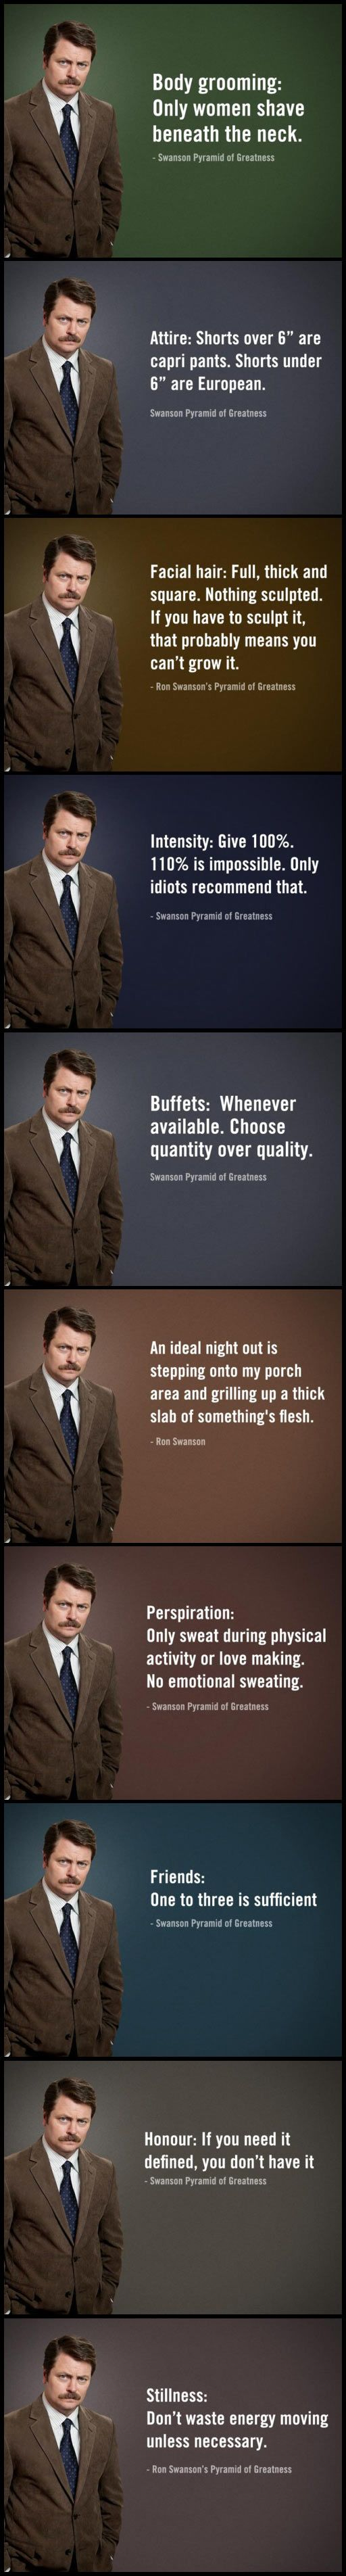 Swanson Pyramid of Greatness. The perfect man.